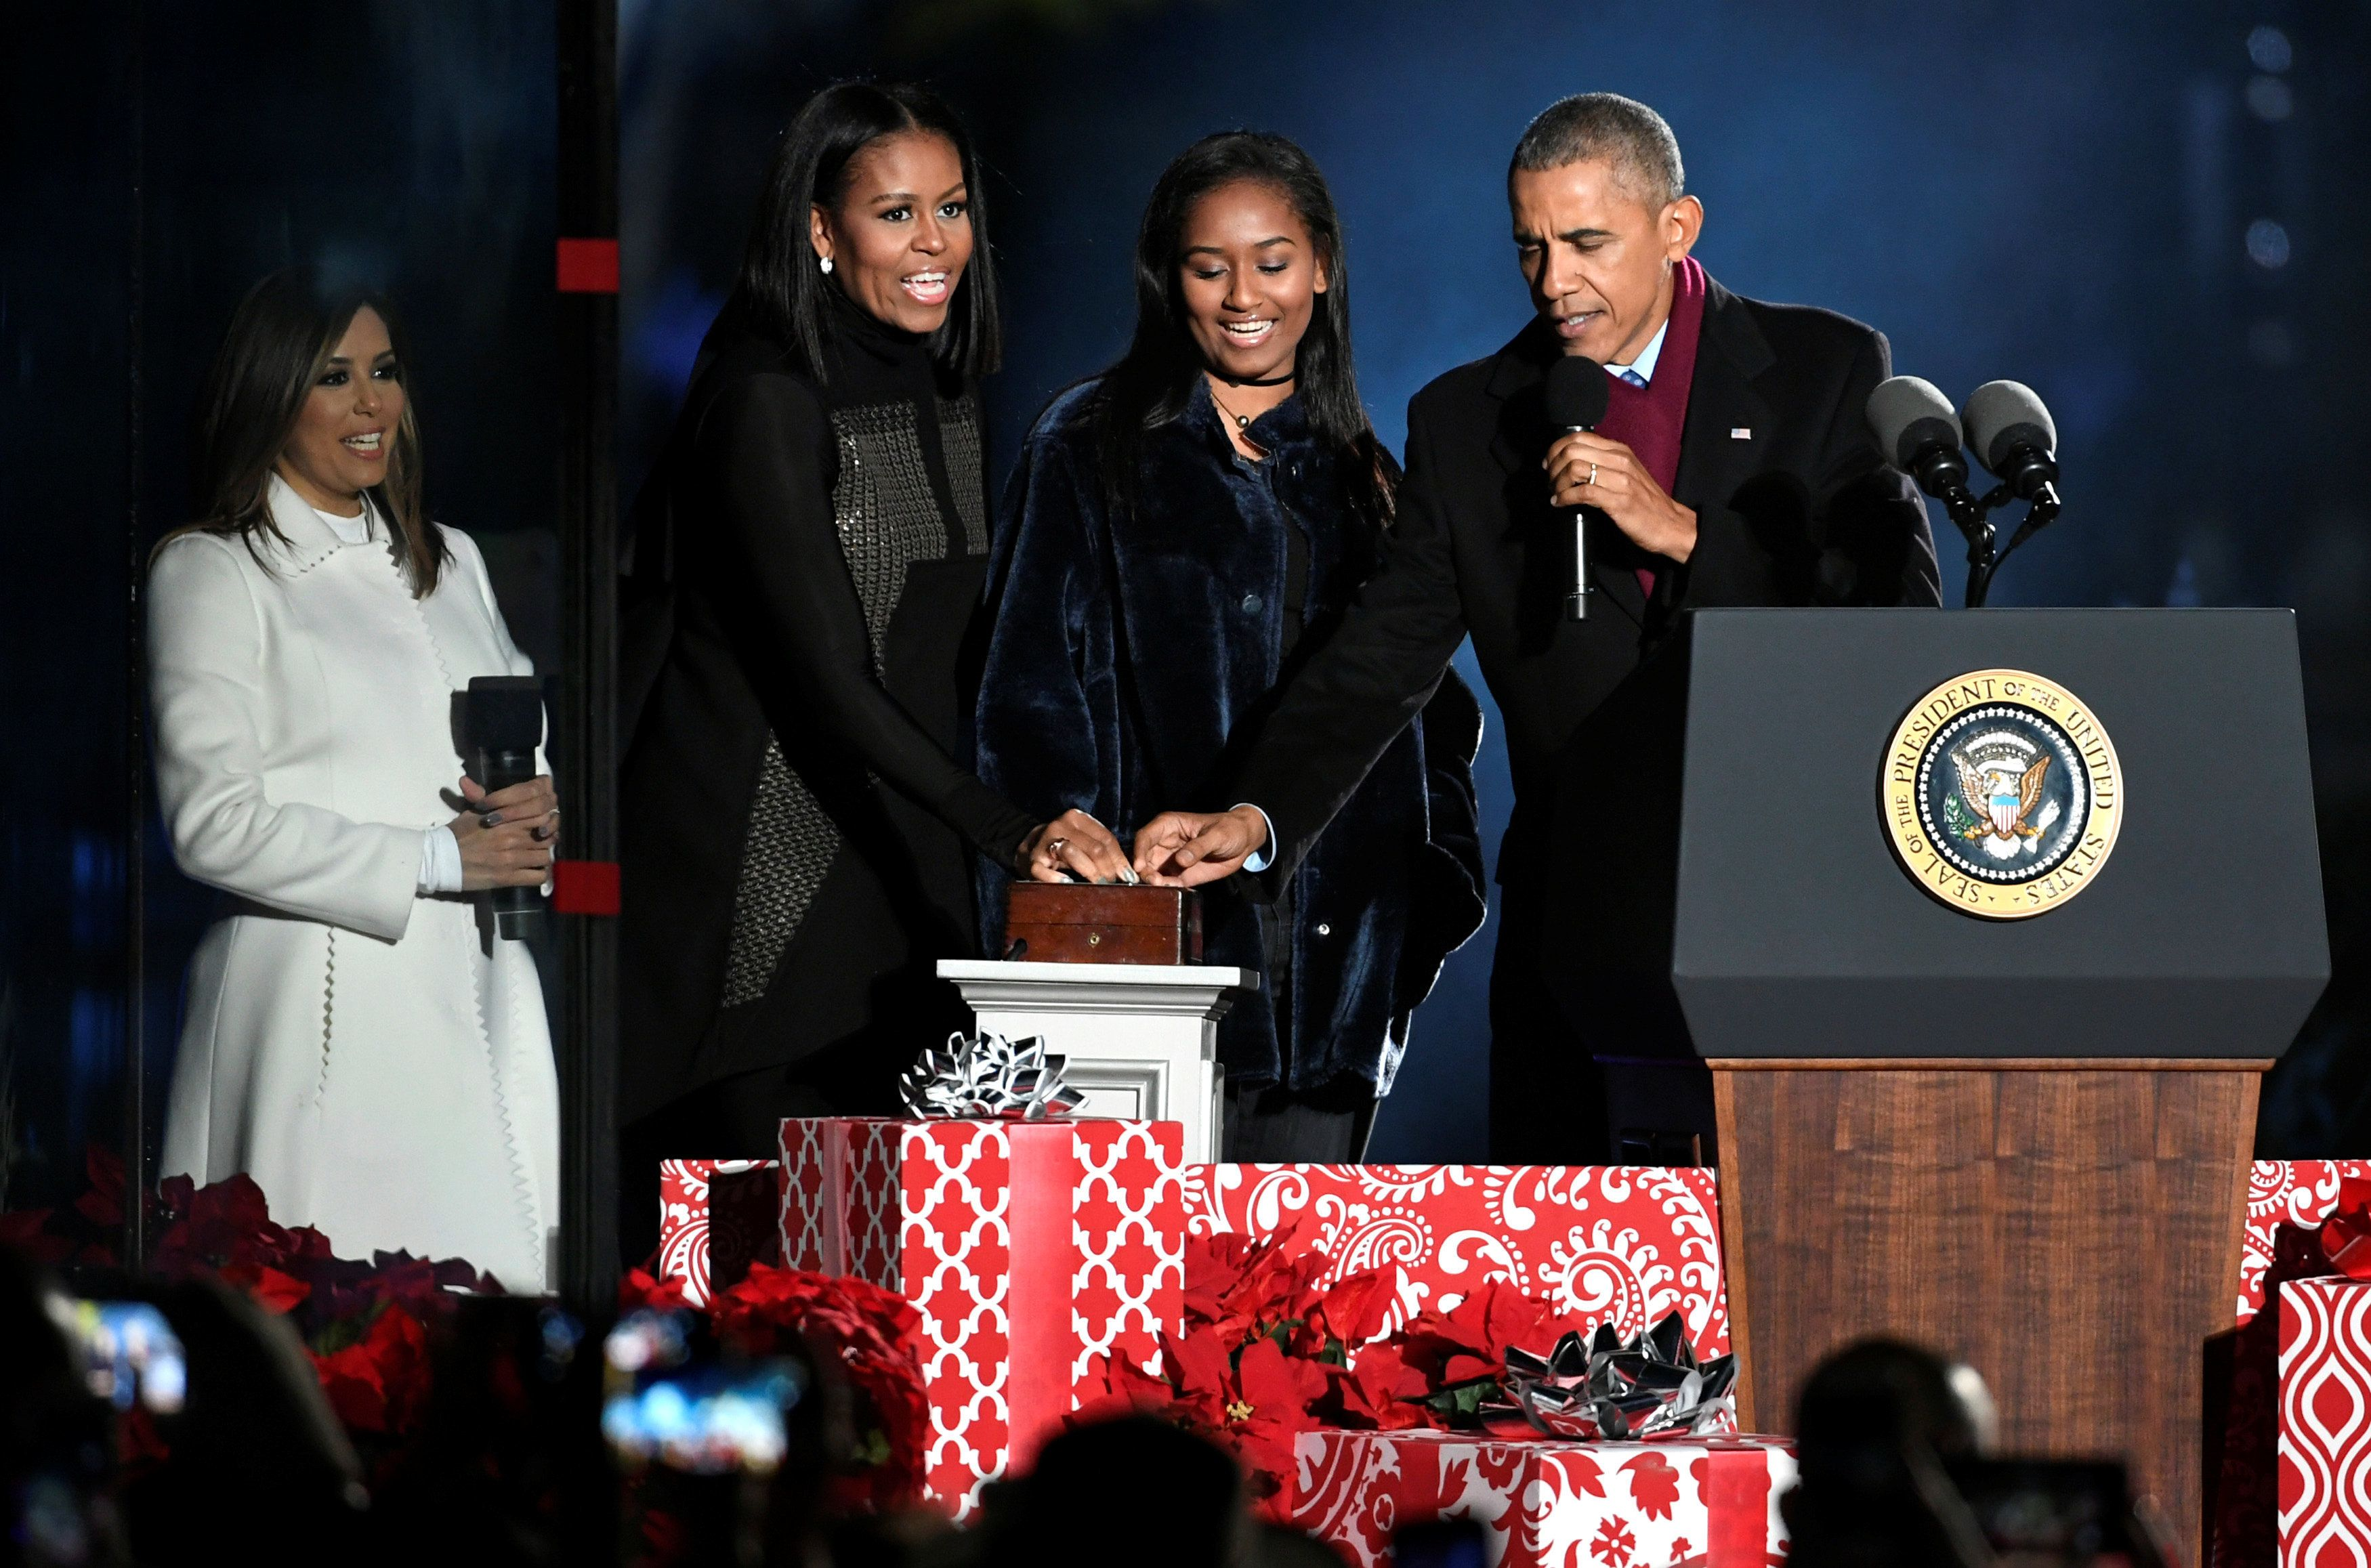 Obama Merry Christmas Greeting Picturesque Sunny | www.picturesboss.com